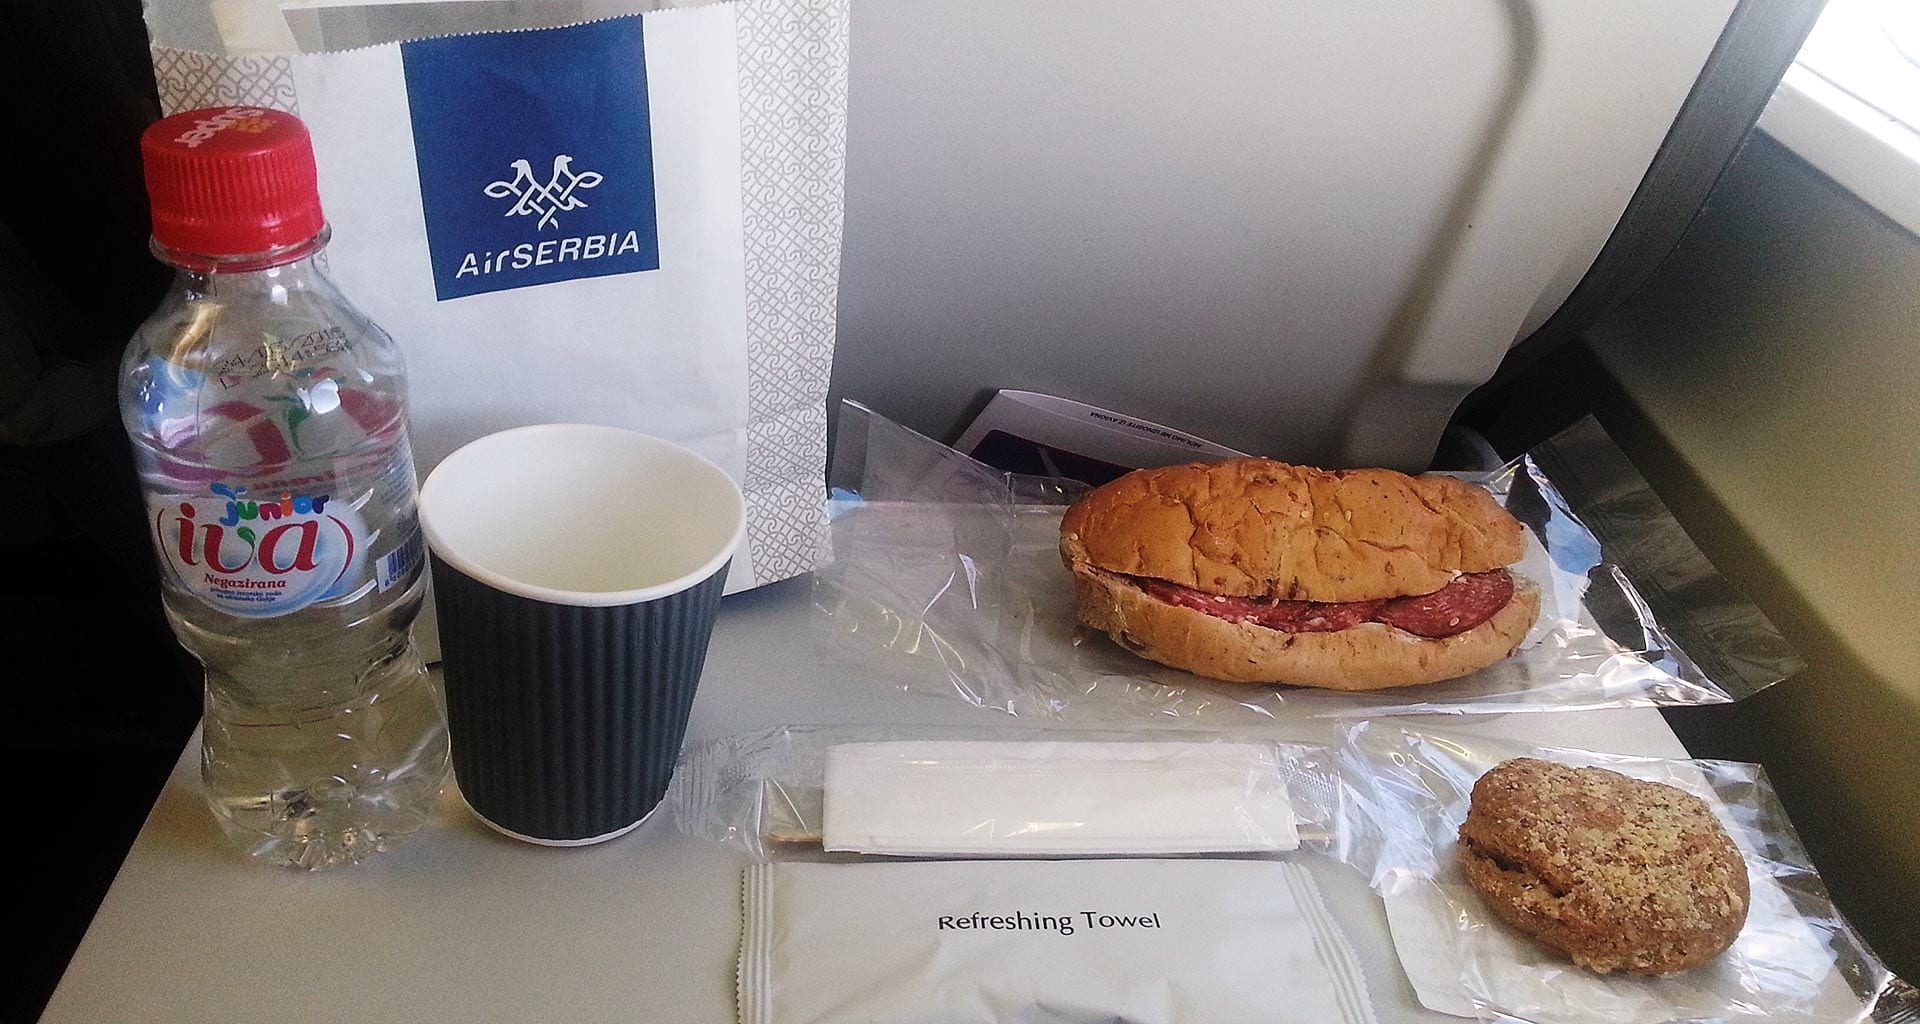 Air Serbia economy class sandwich and hot drink